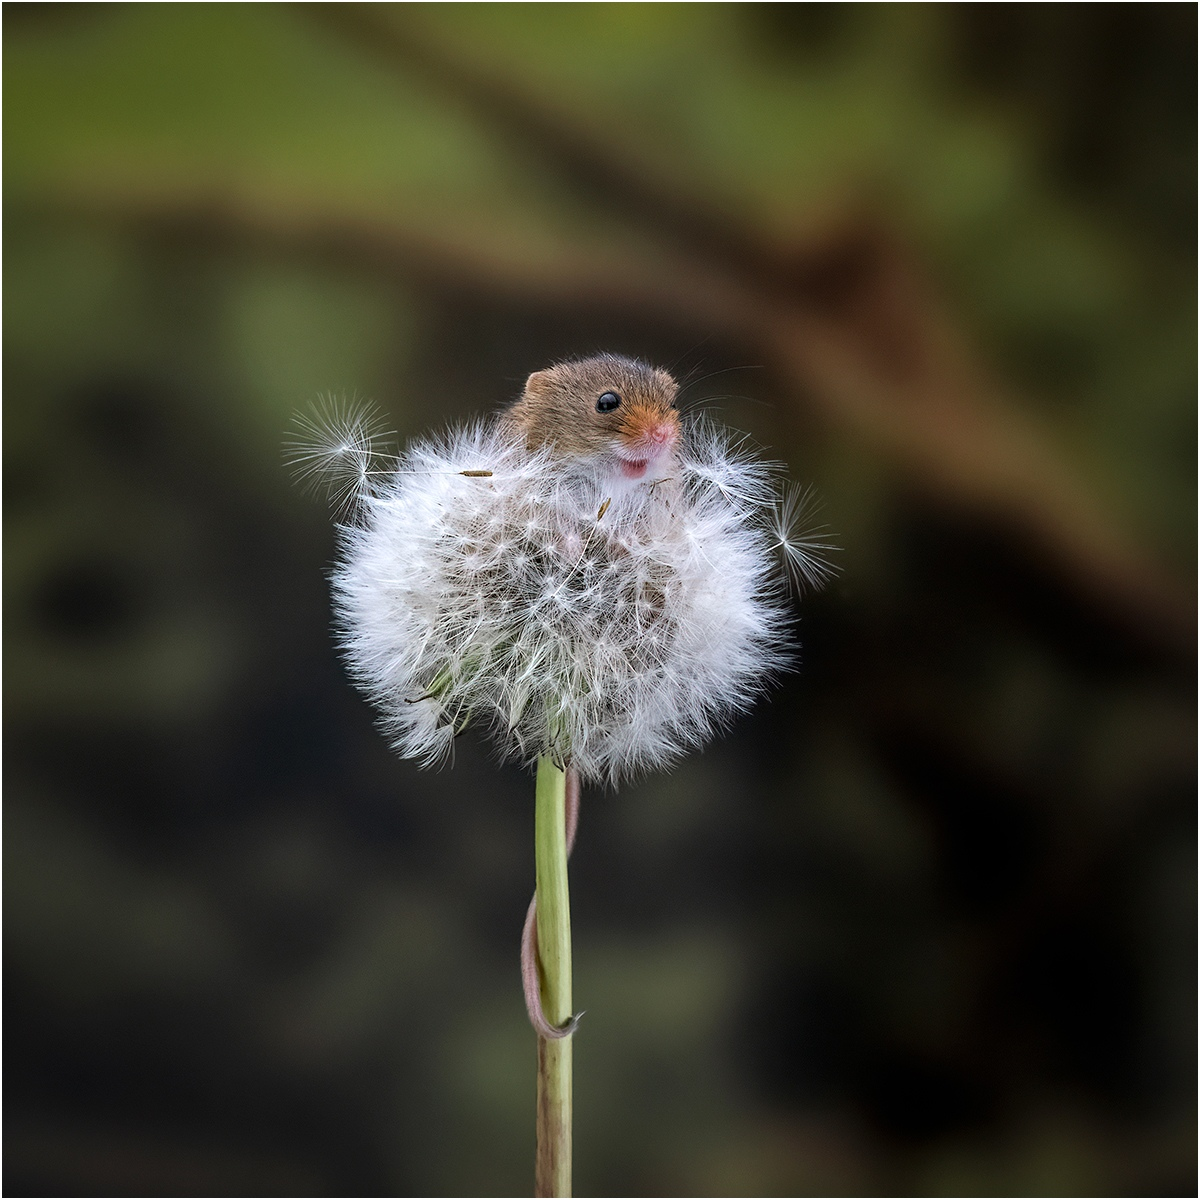 2nd - Harvest Mouse emerging from Dandelion - Michelle Howell